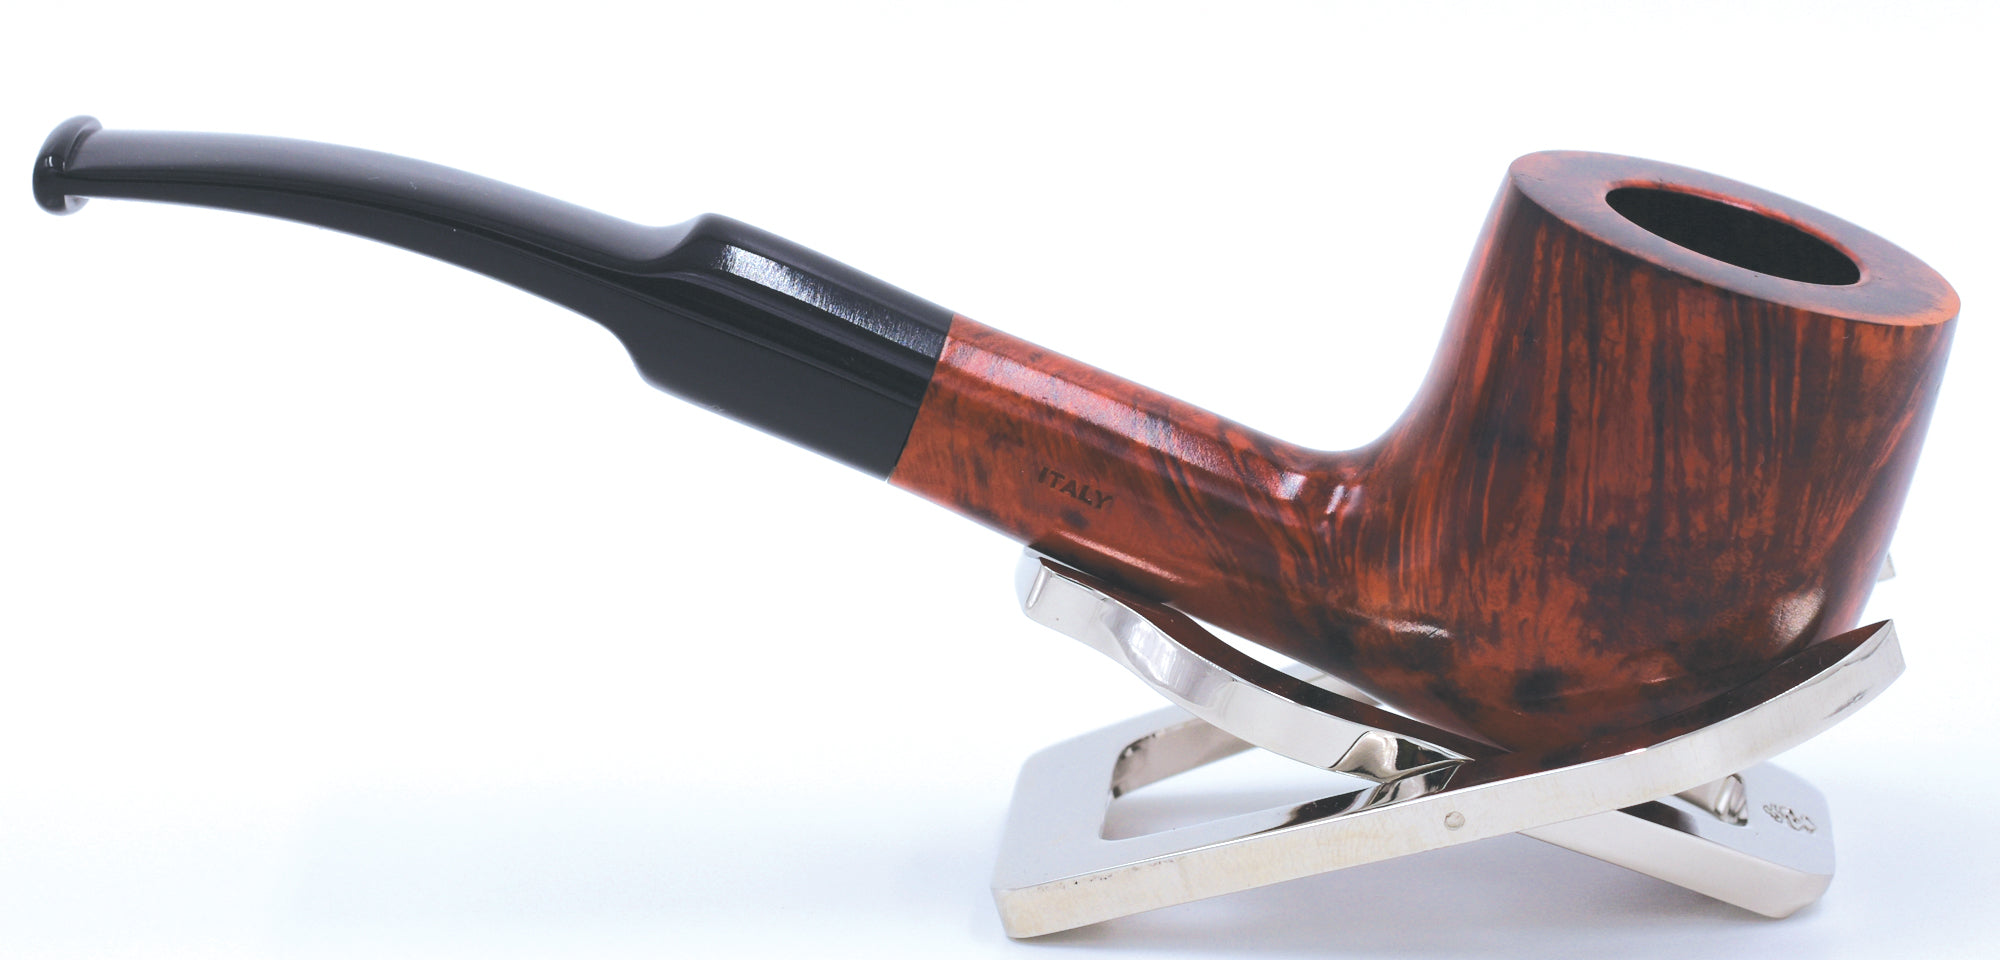 LEGENDEX® PAGANINI* 9 MM Filtered Briar Smoking Pipe Made In Italy 01-08-308